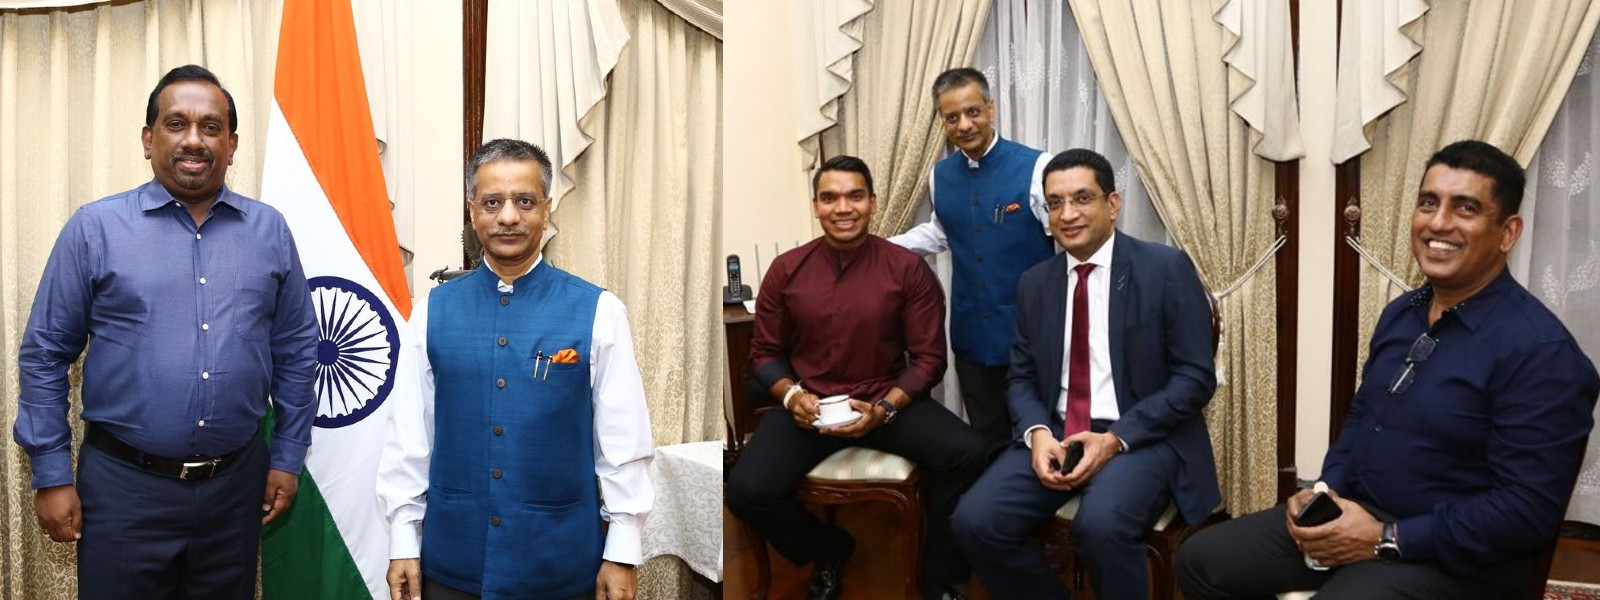 (PICTURES) Indian High Commissioner hosts dinner for new Sri Lankan Cabinet